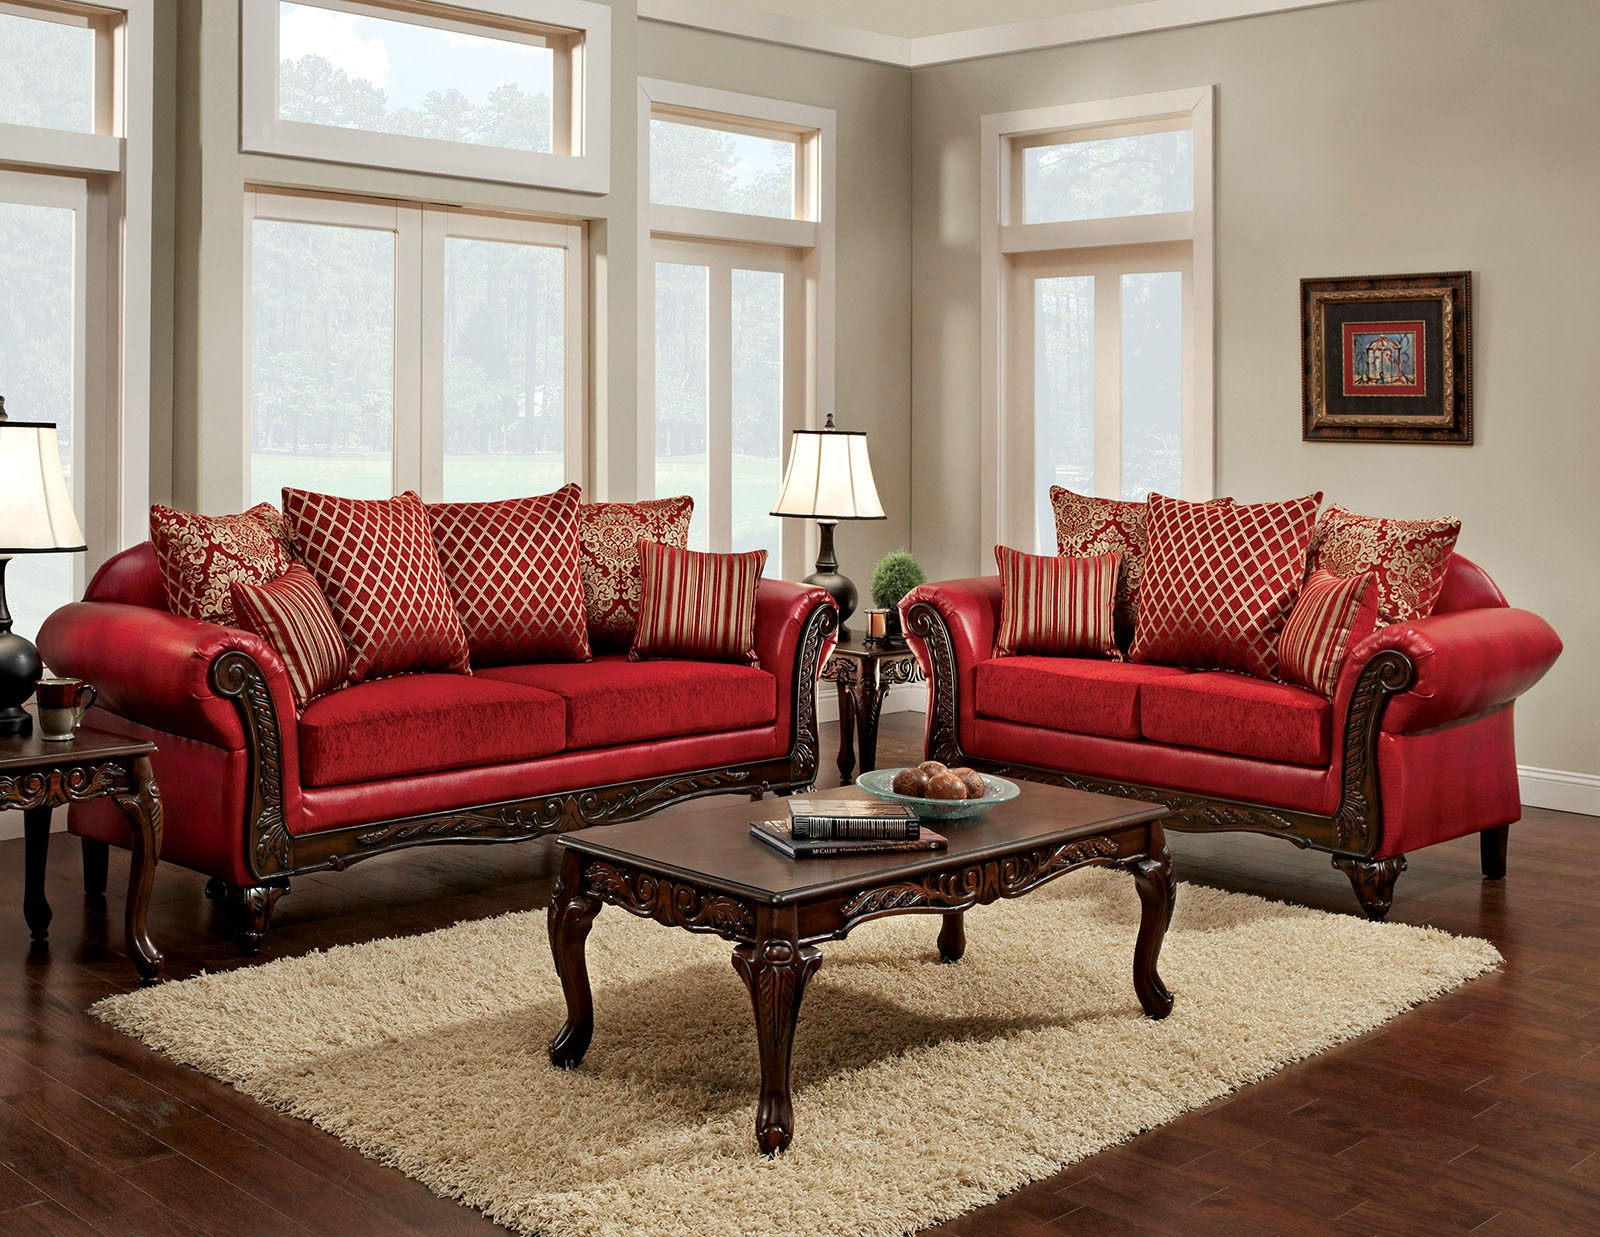 marcus red living room set sm7640 sf furniture of america. Black Bedroom Furniture Sets. Home Design Ideas